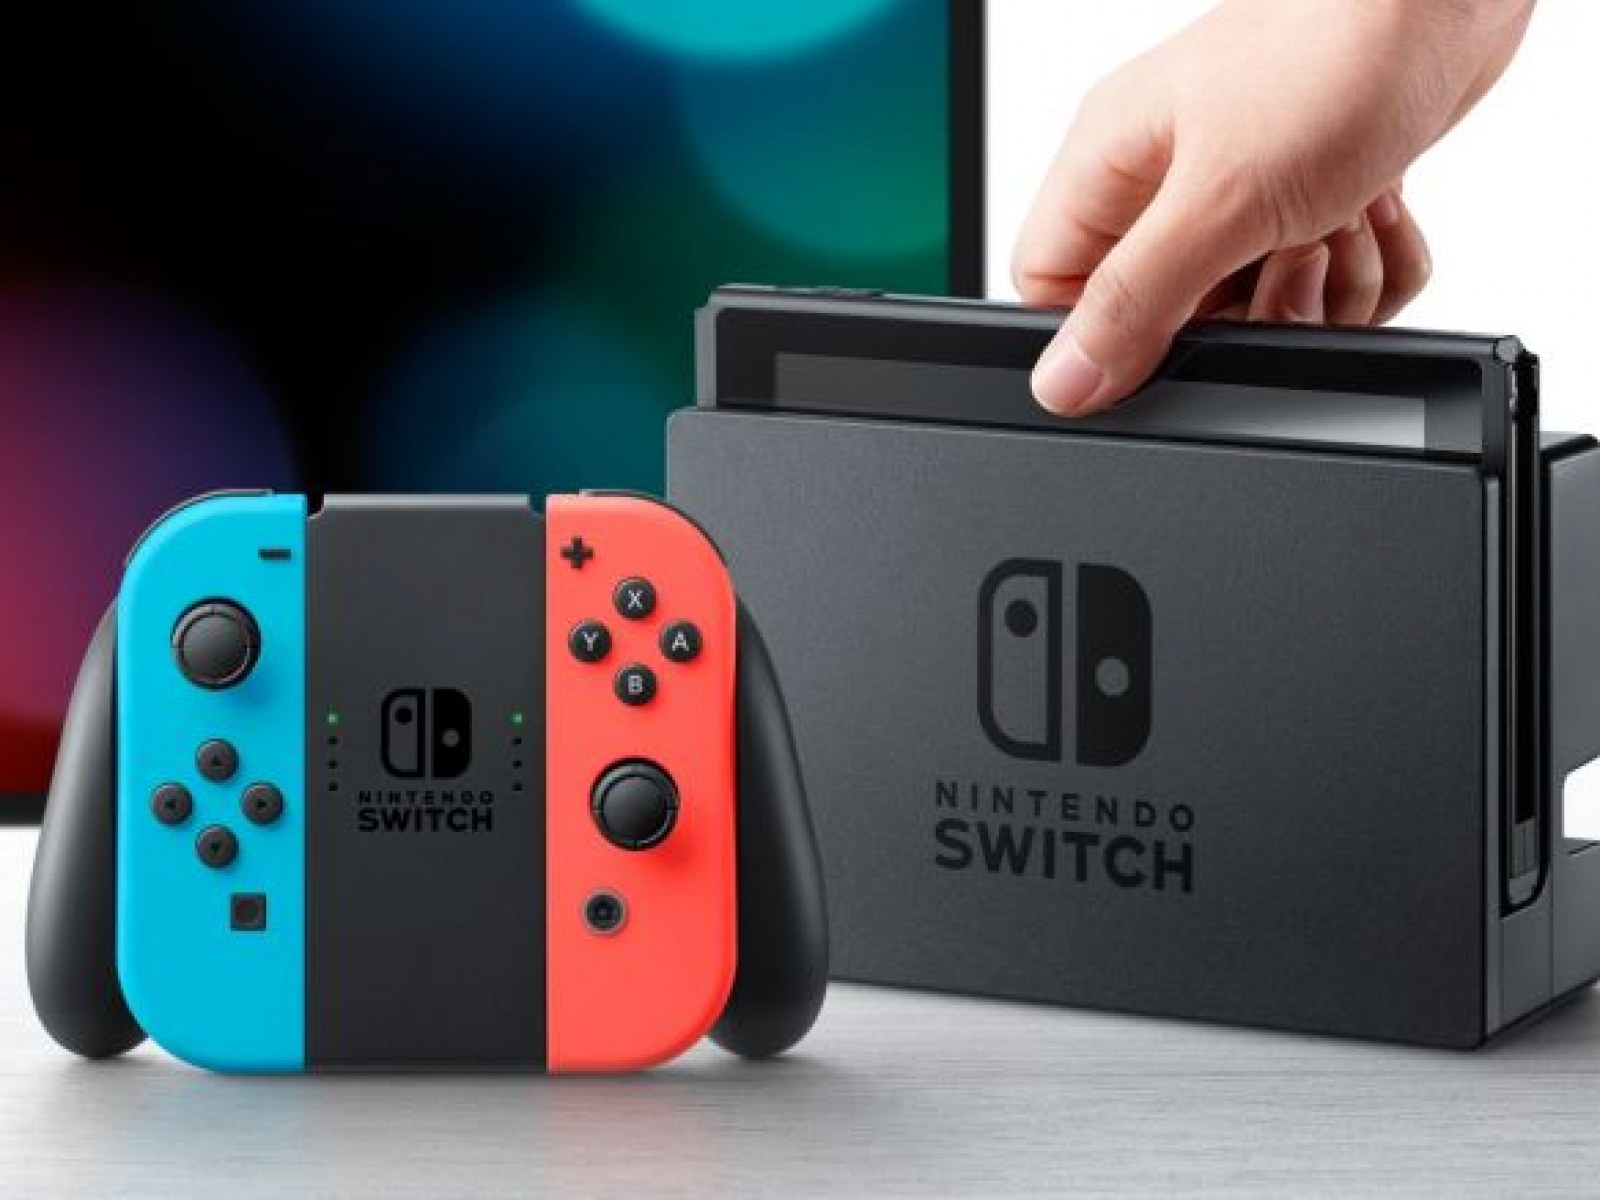 Nintendo Black Friday 2018 Deals: Target Has Switch Bundles